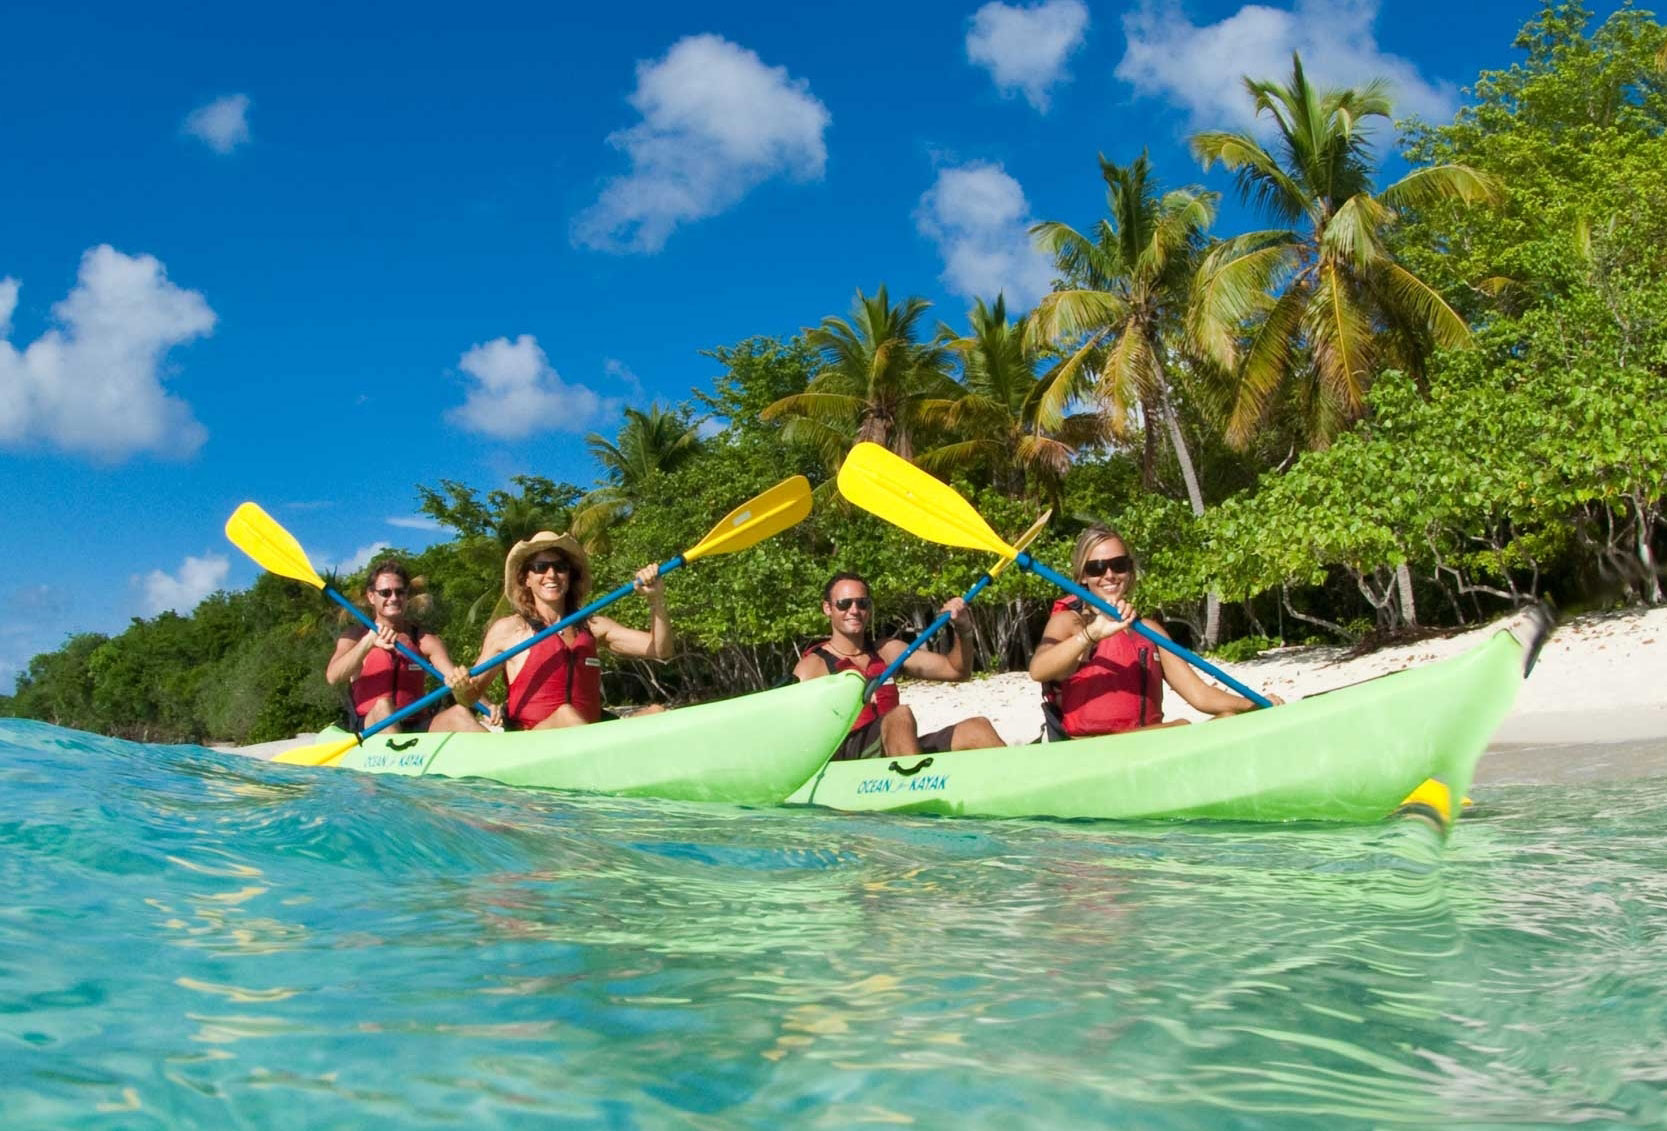 6. Virgin Island Eco Tours